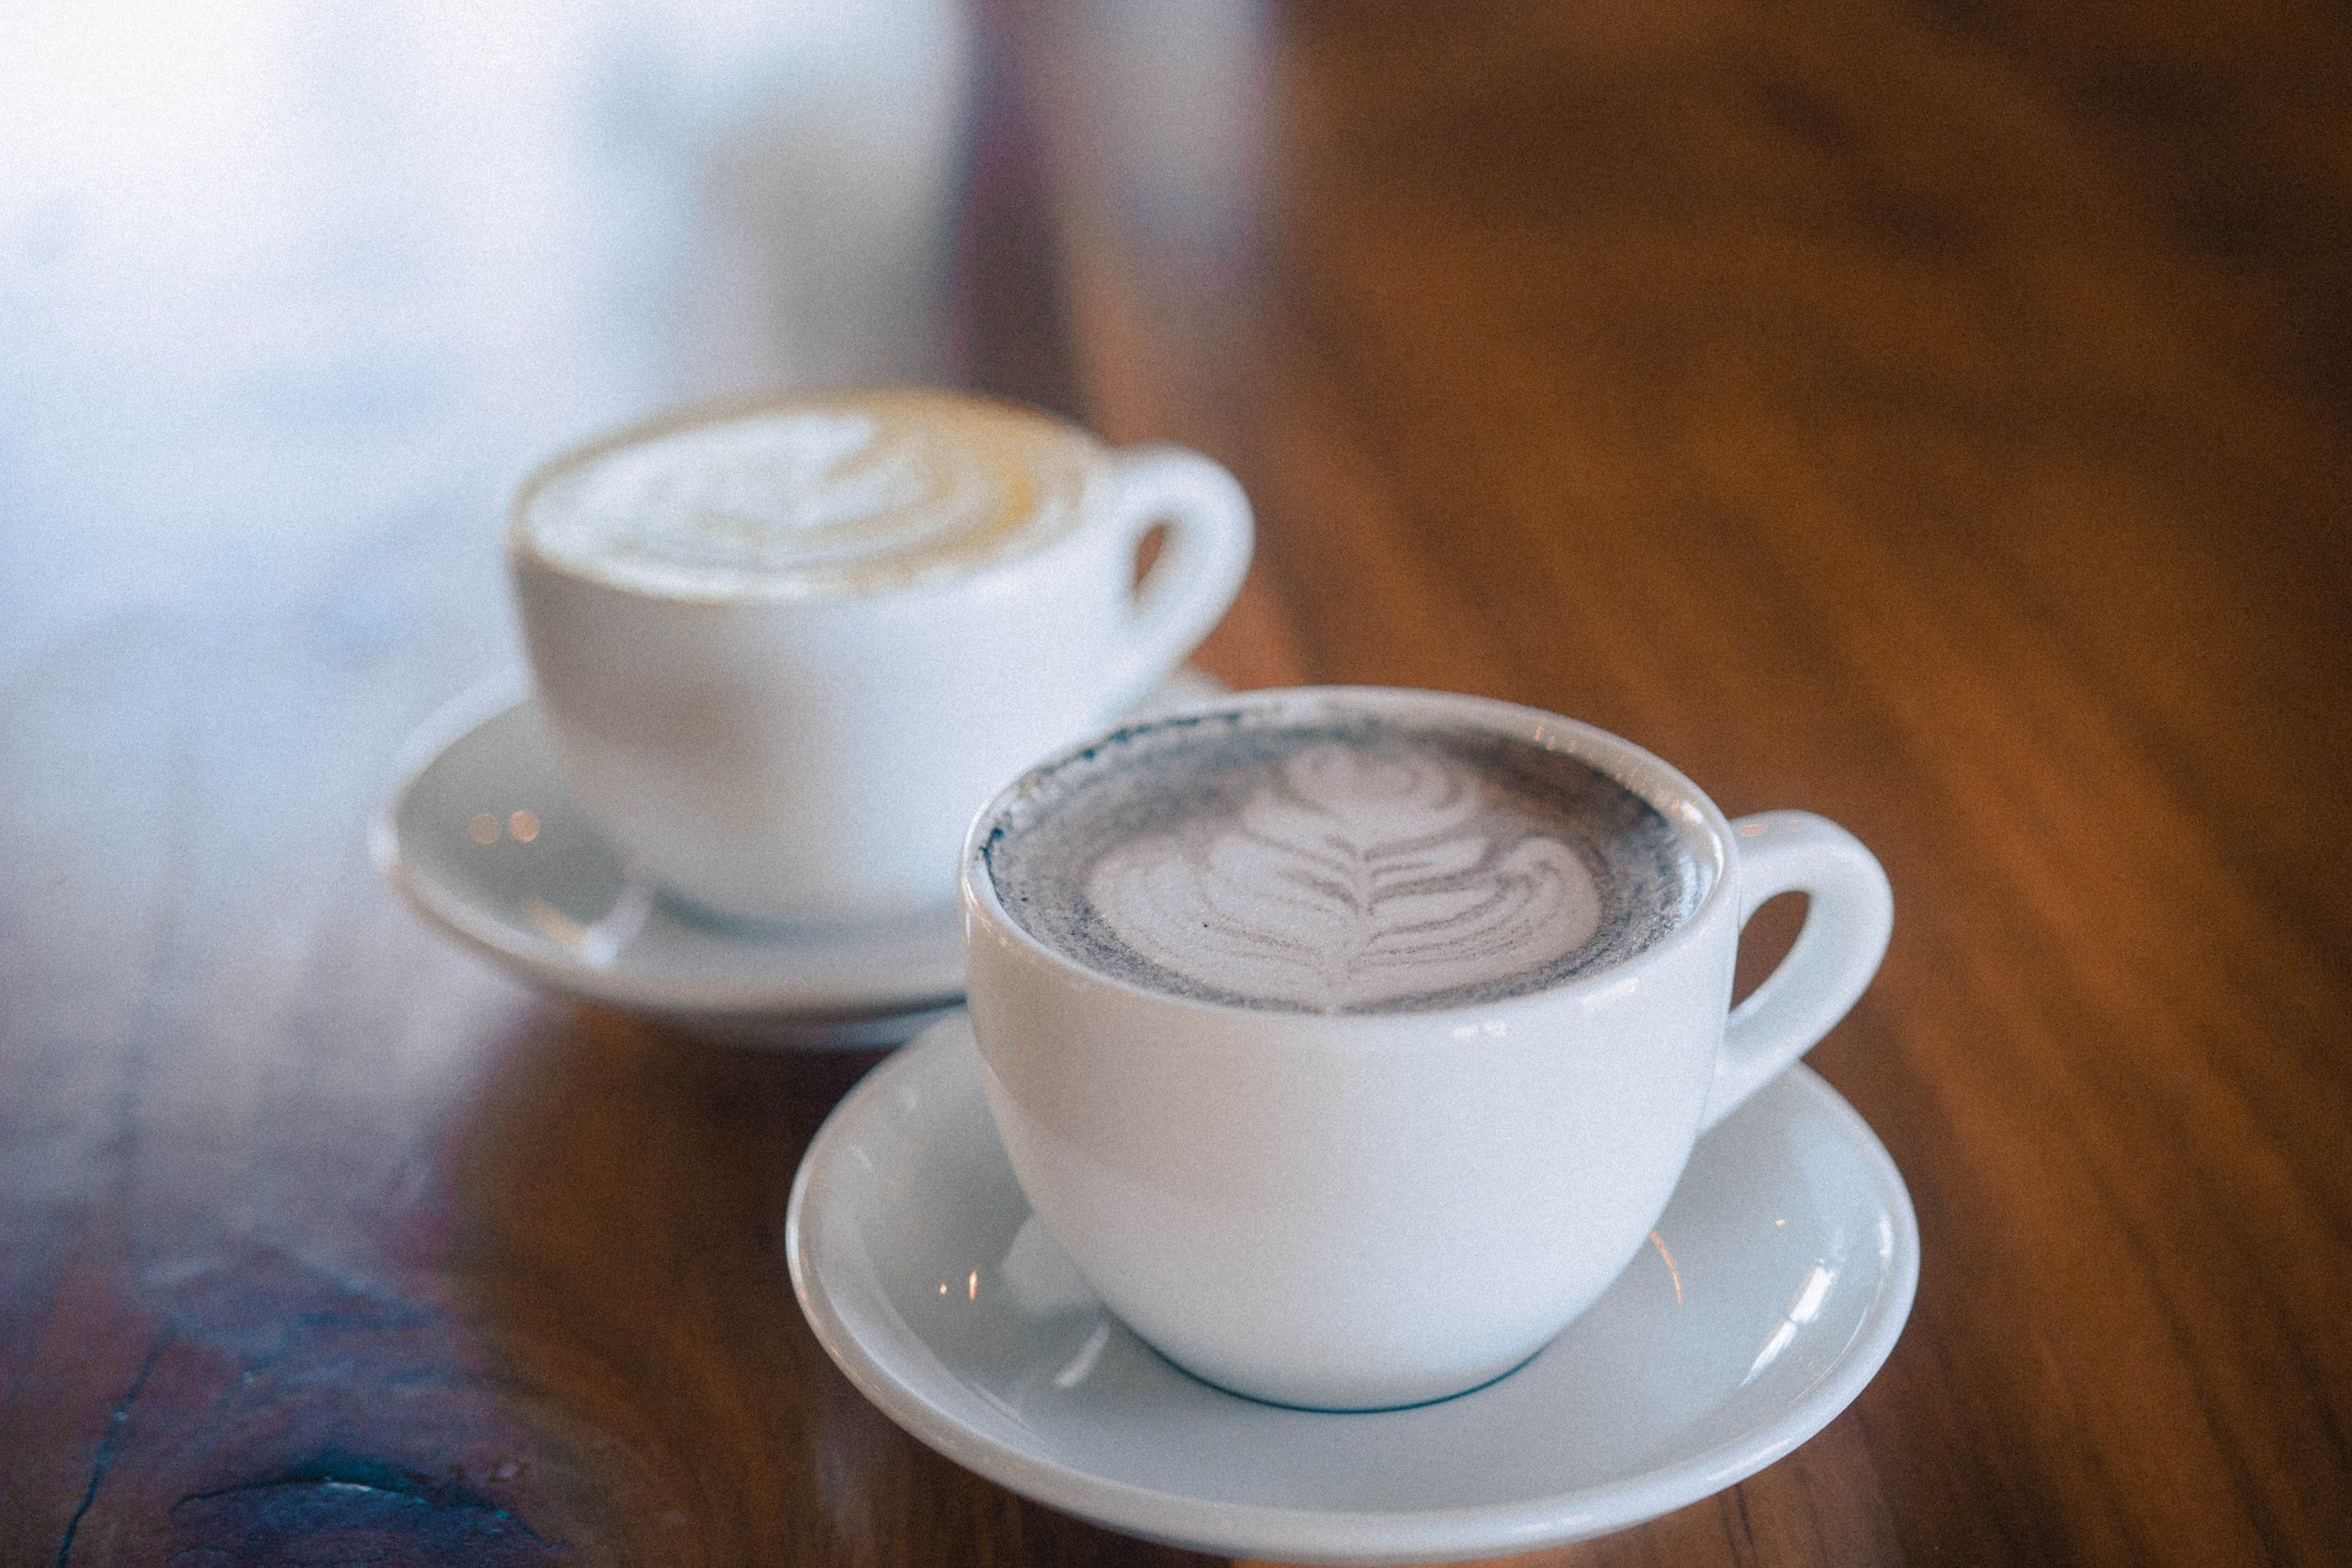 Two_white_cups_and_saucers.jpg